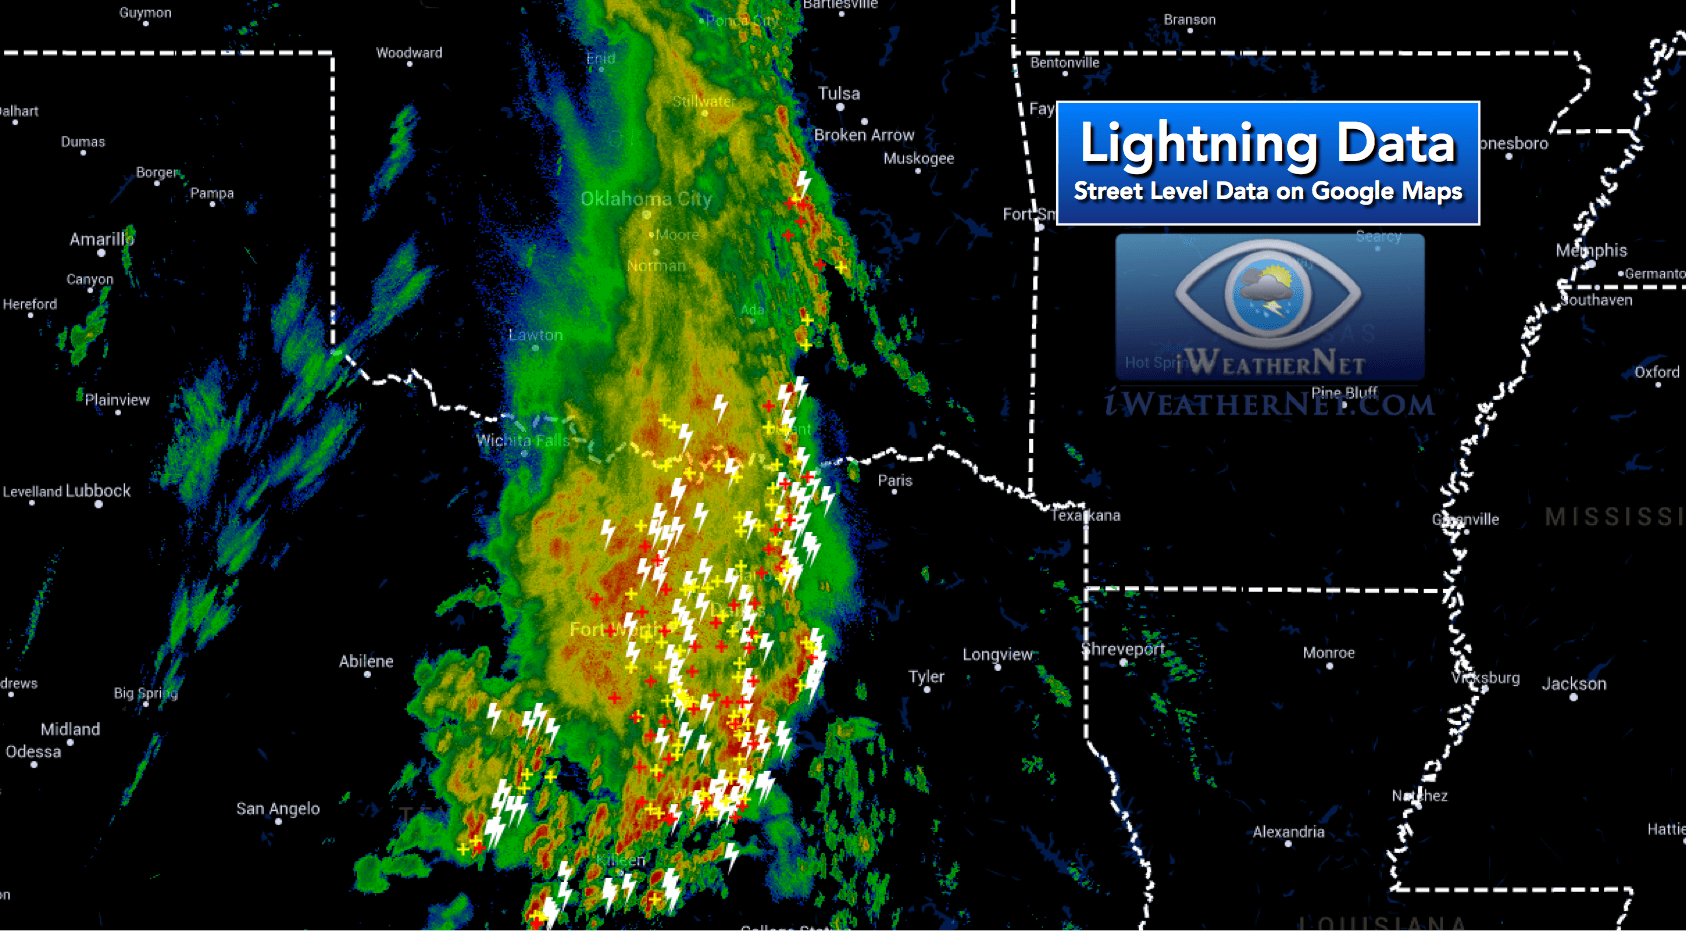 Colorado Lightning Strike Map Latest Lightning Strikes on Google Maps – iWeatherNet